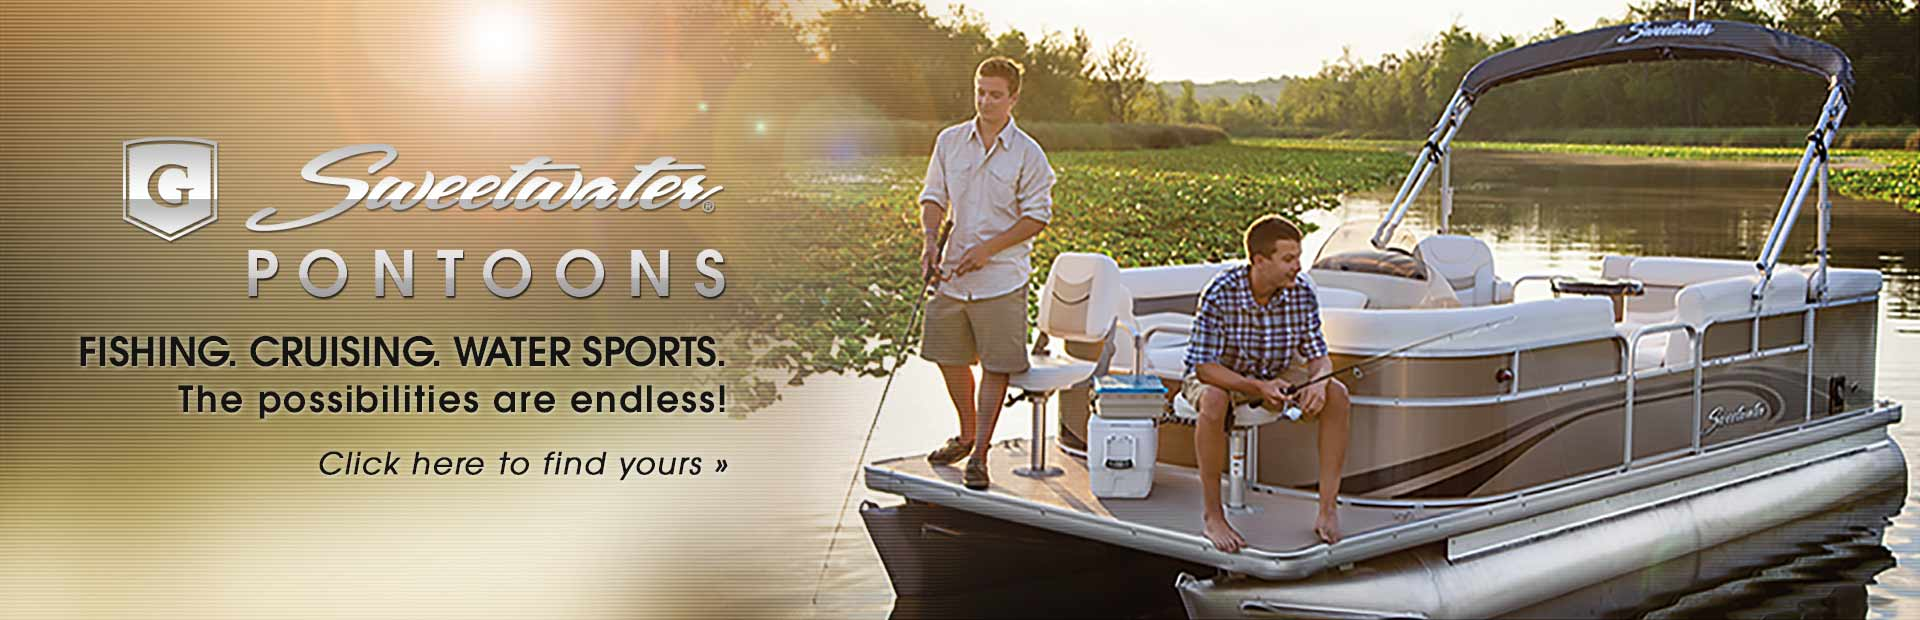 Sweetwater Pontoons: Click here to view the models.